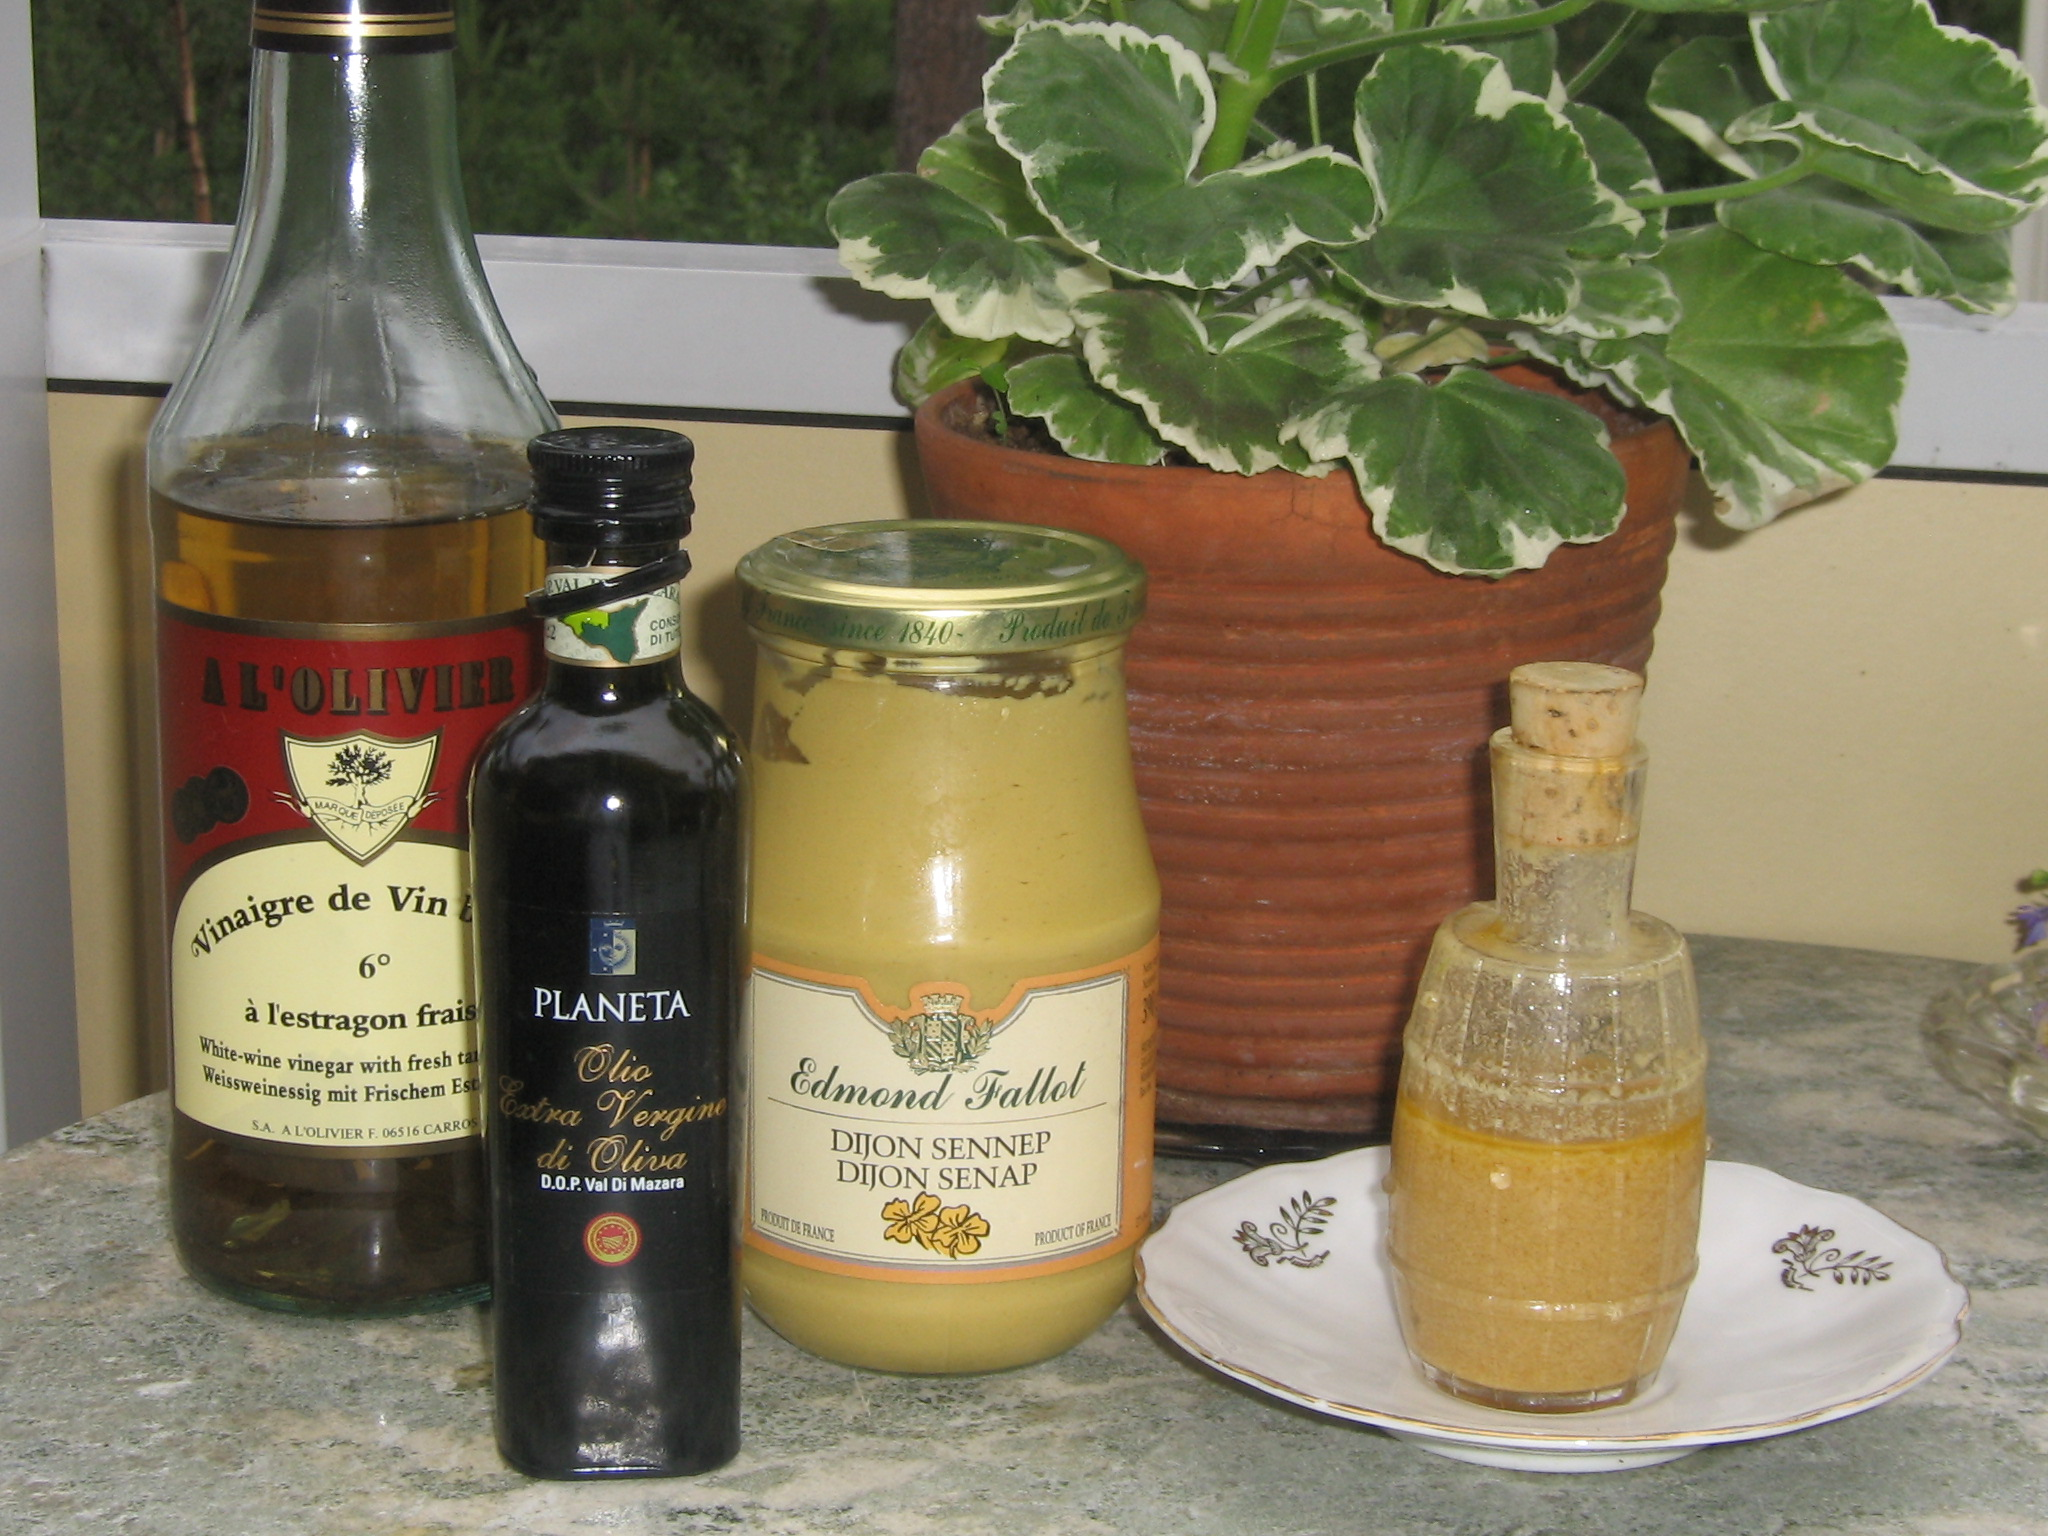 Extra Virgin Olive Oil, Moutarde Dijon, Vinaigre l'Estragon